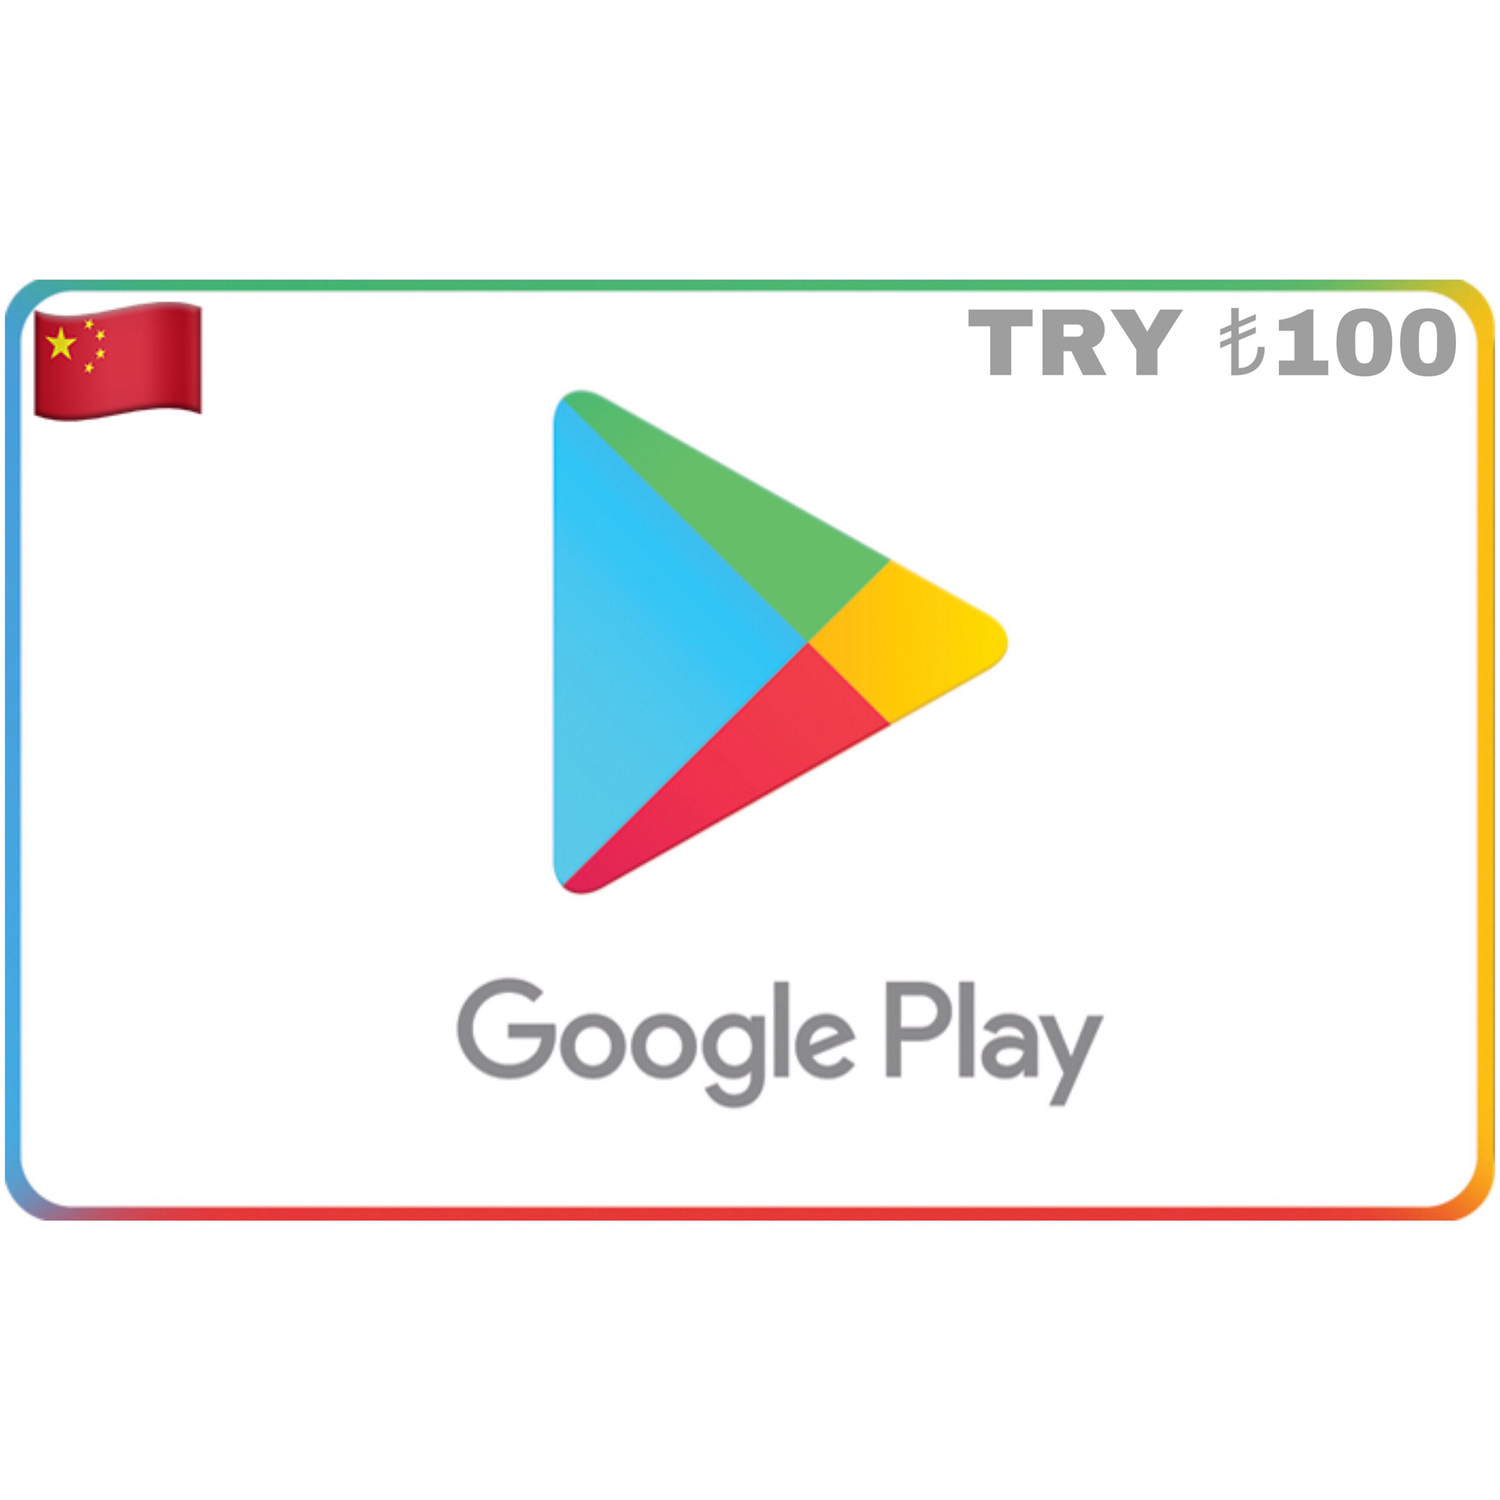 Google Play Gift Card Turkey TRY ₺100